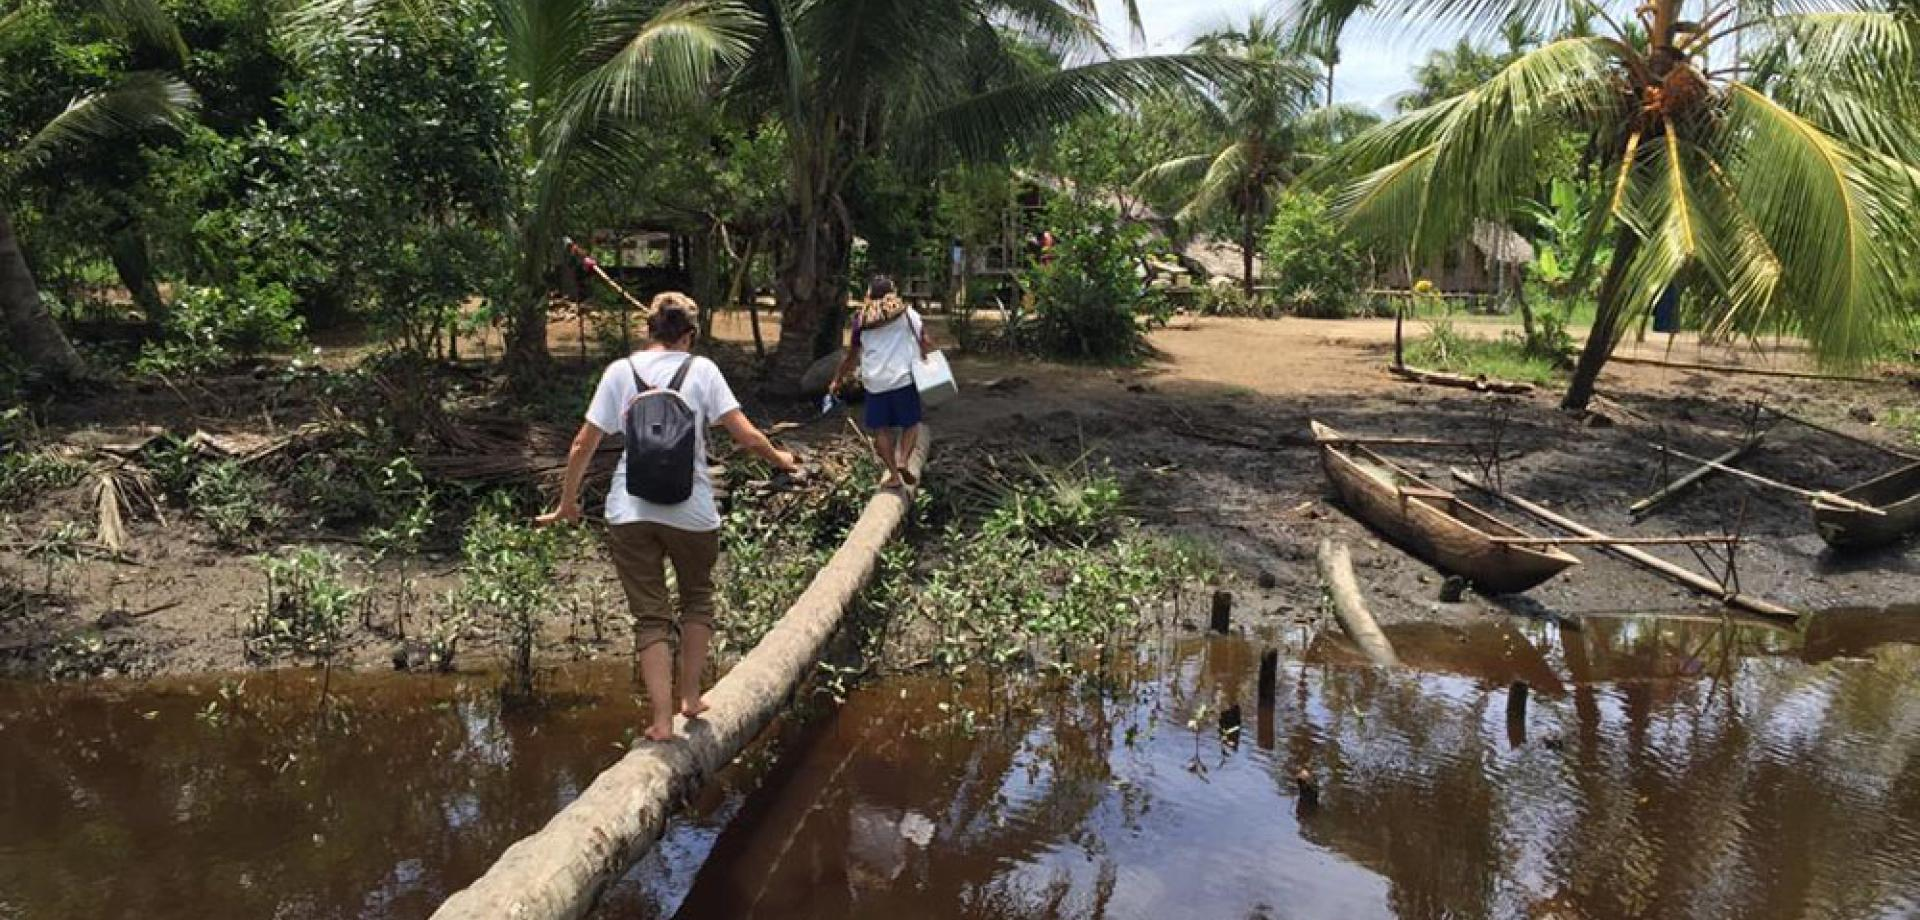 MSF team cross river to reach tuberculosis patients in Papua New Guinea